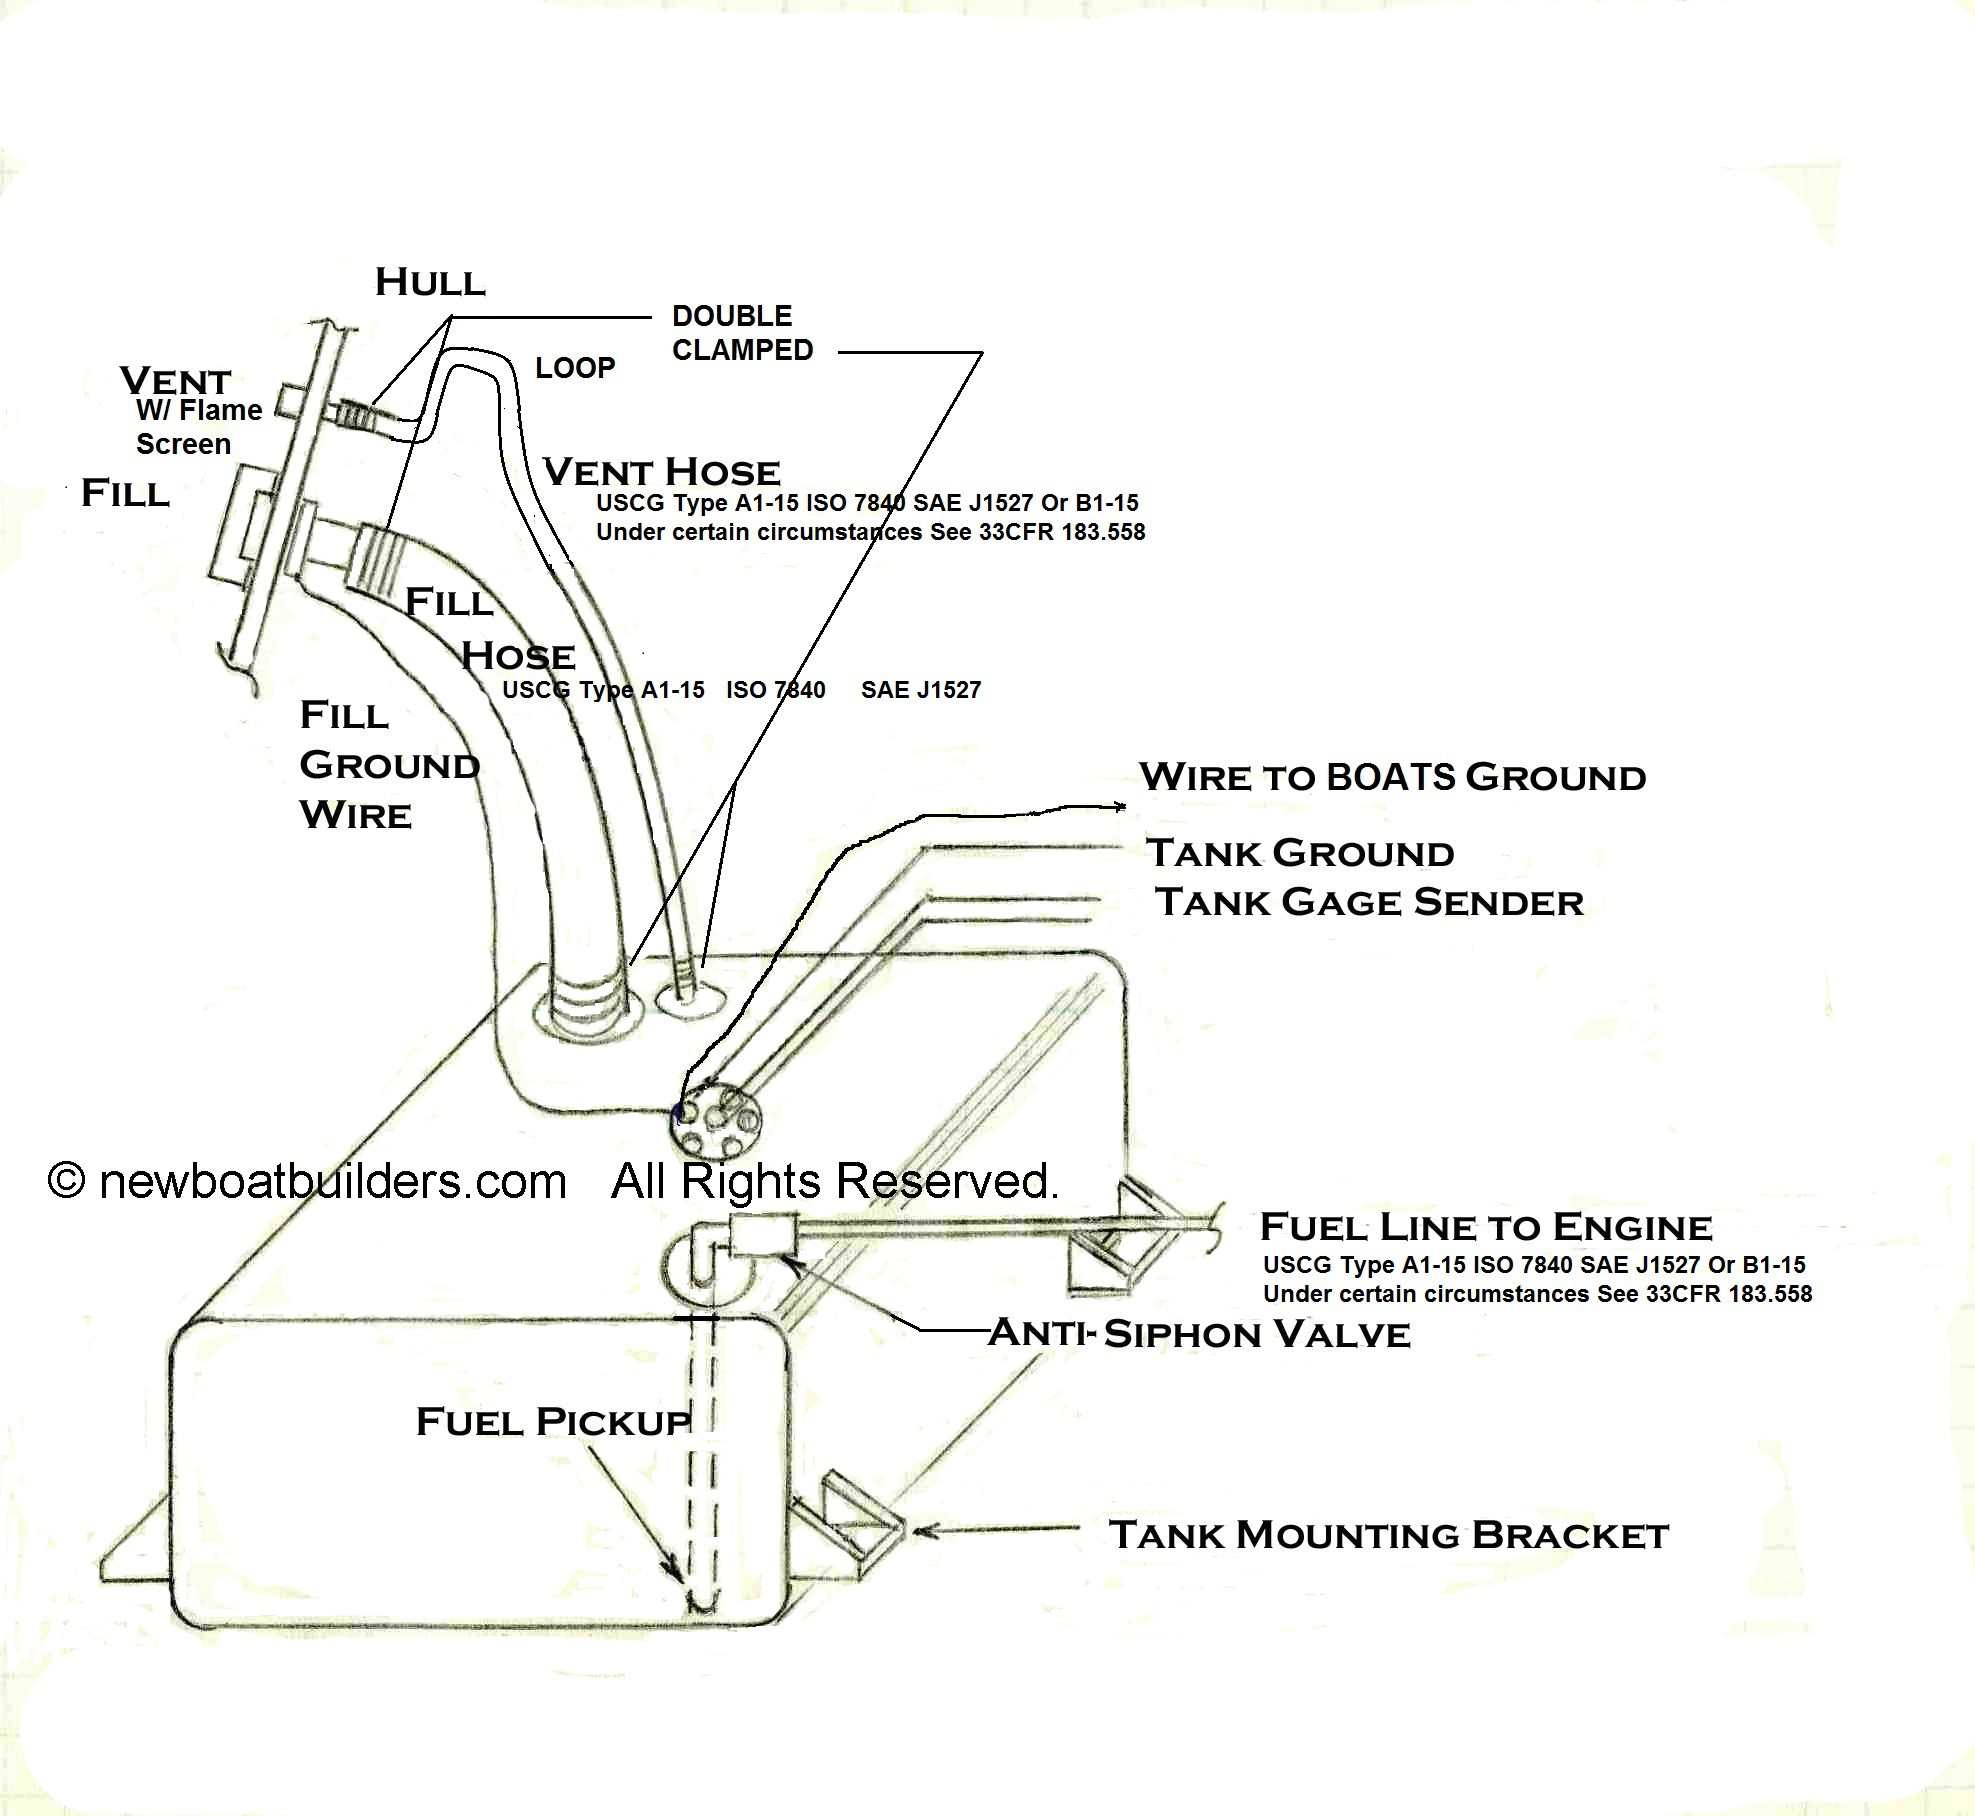 Inboard Outboard Engine Diagram Outrageous Fuel Tank Idea [sitemap] Cruisers & Sailing forums Of Inboard Outboard Engine Diagram